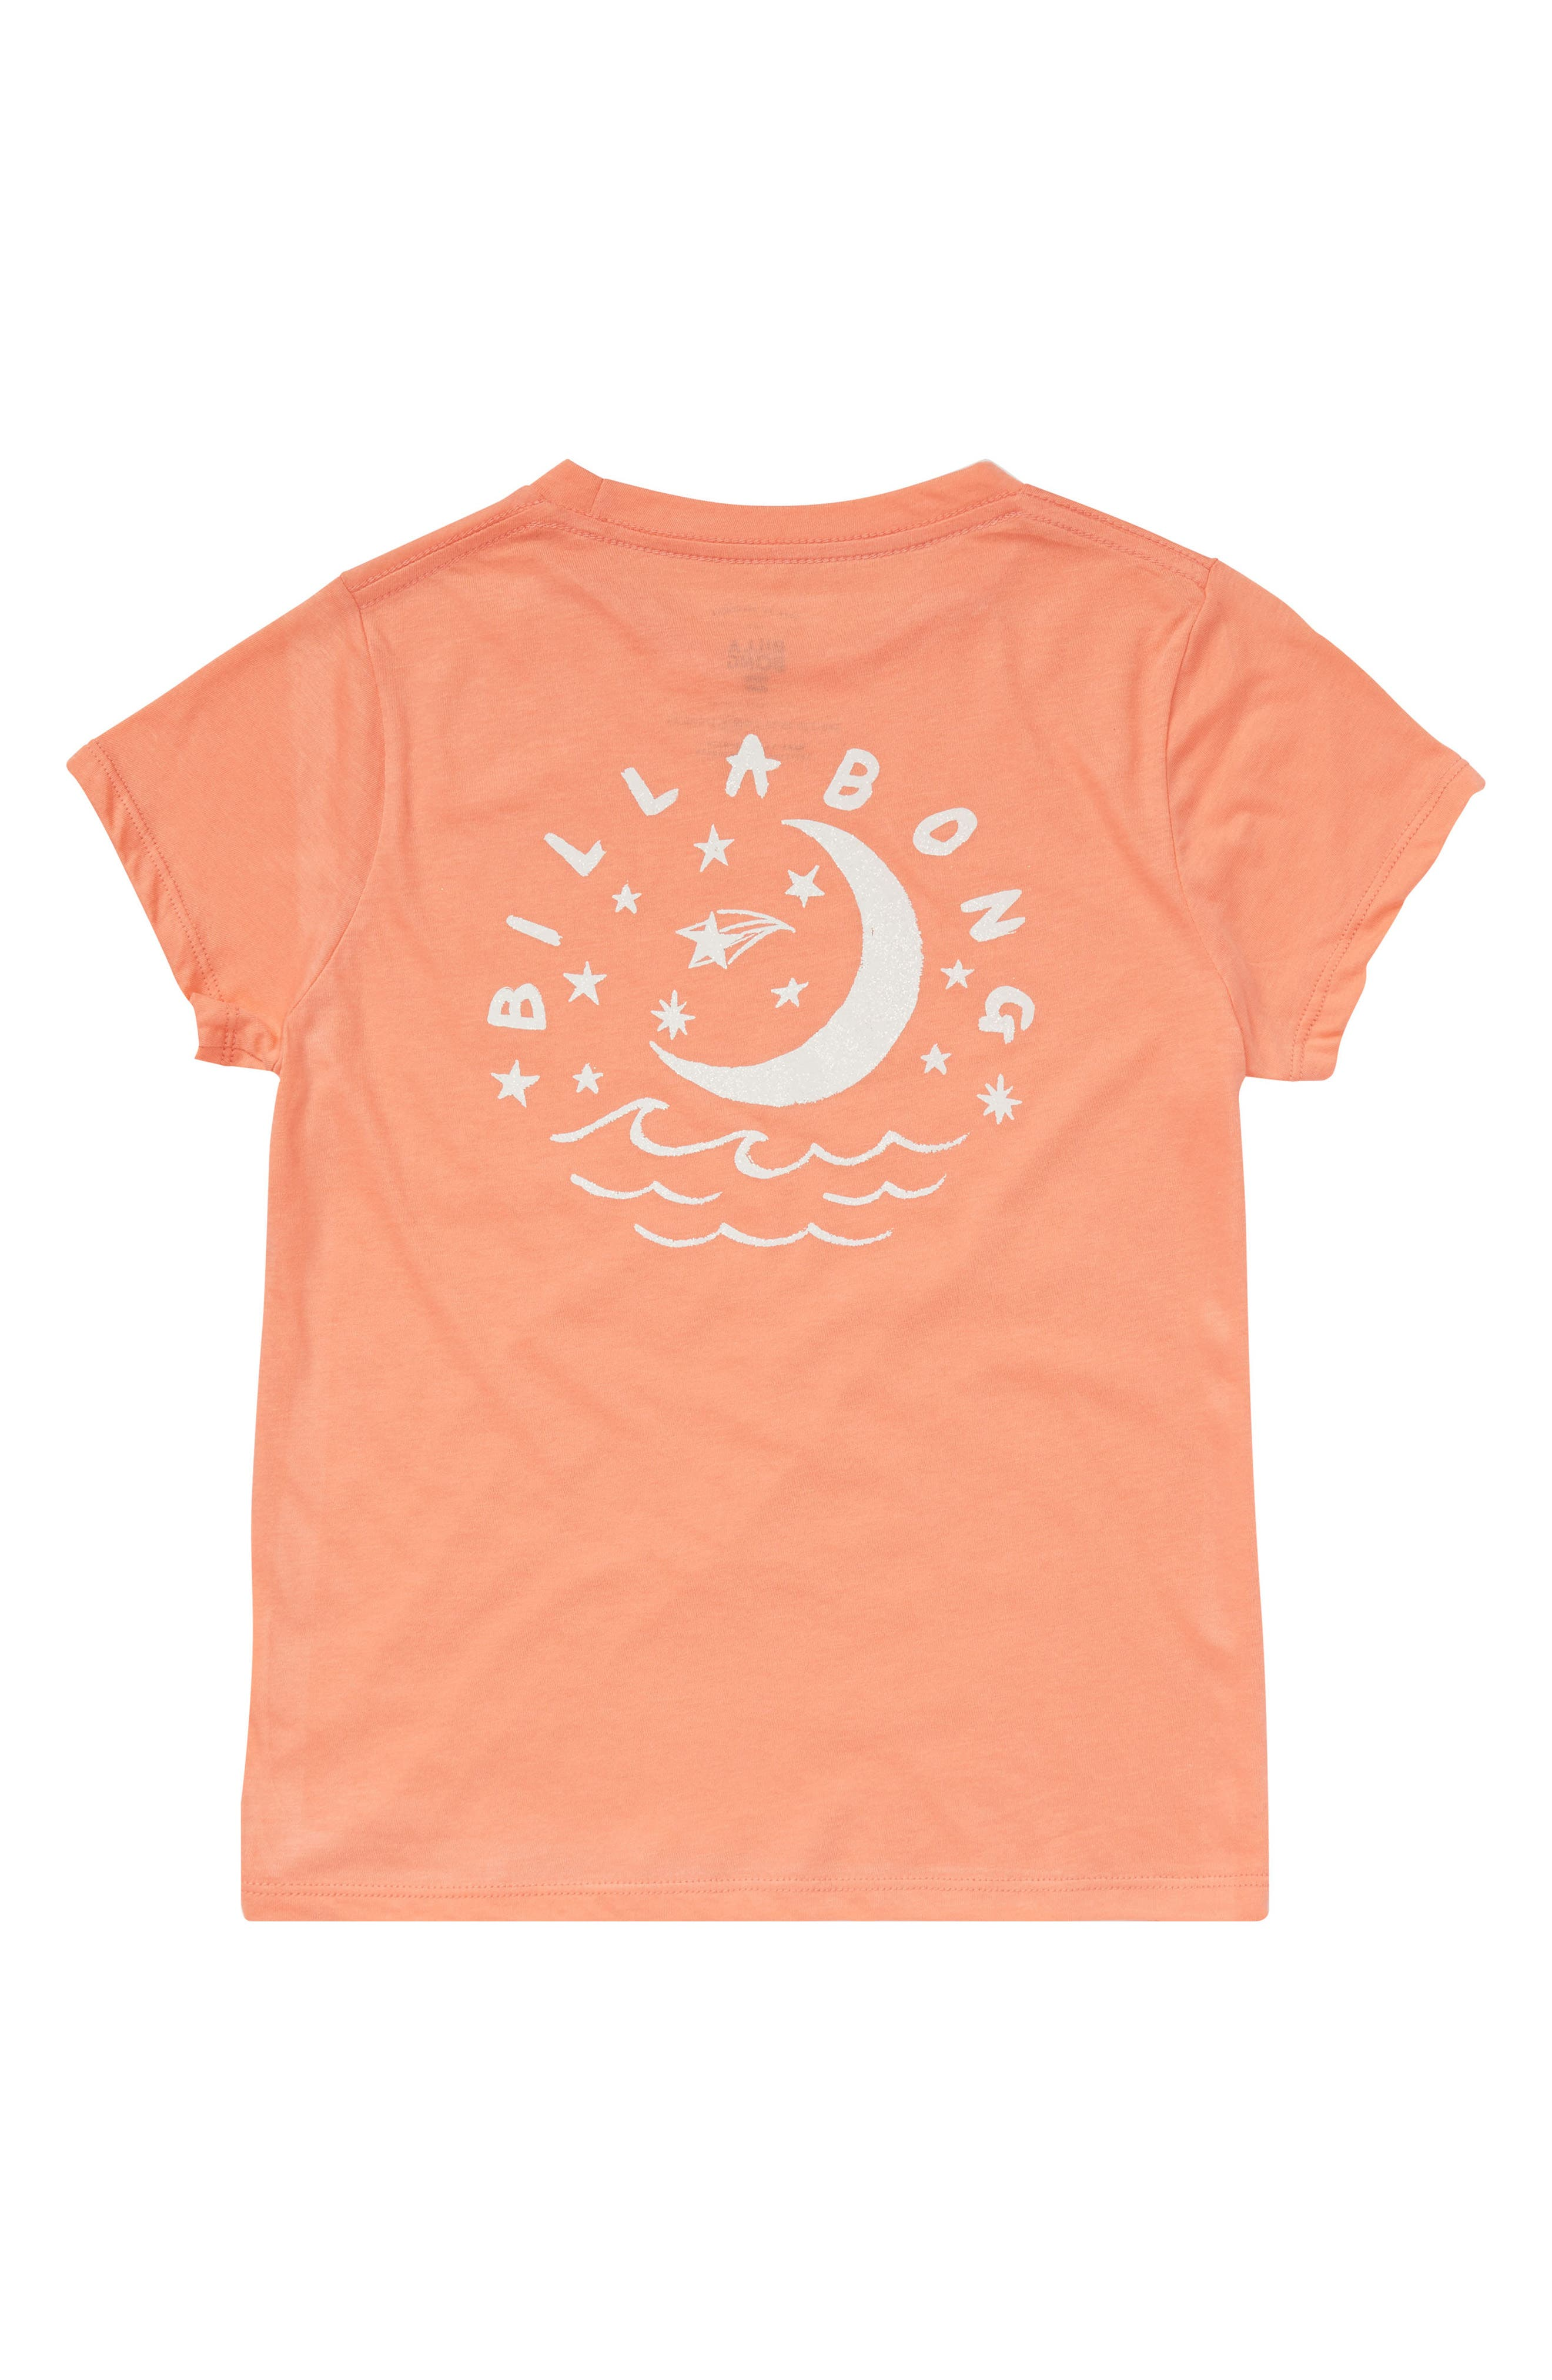 Night Sky Graphic Tee,                             Alternate thumbnail 2, color,                             Sunkissed Coral